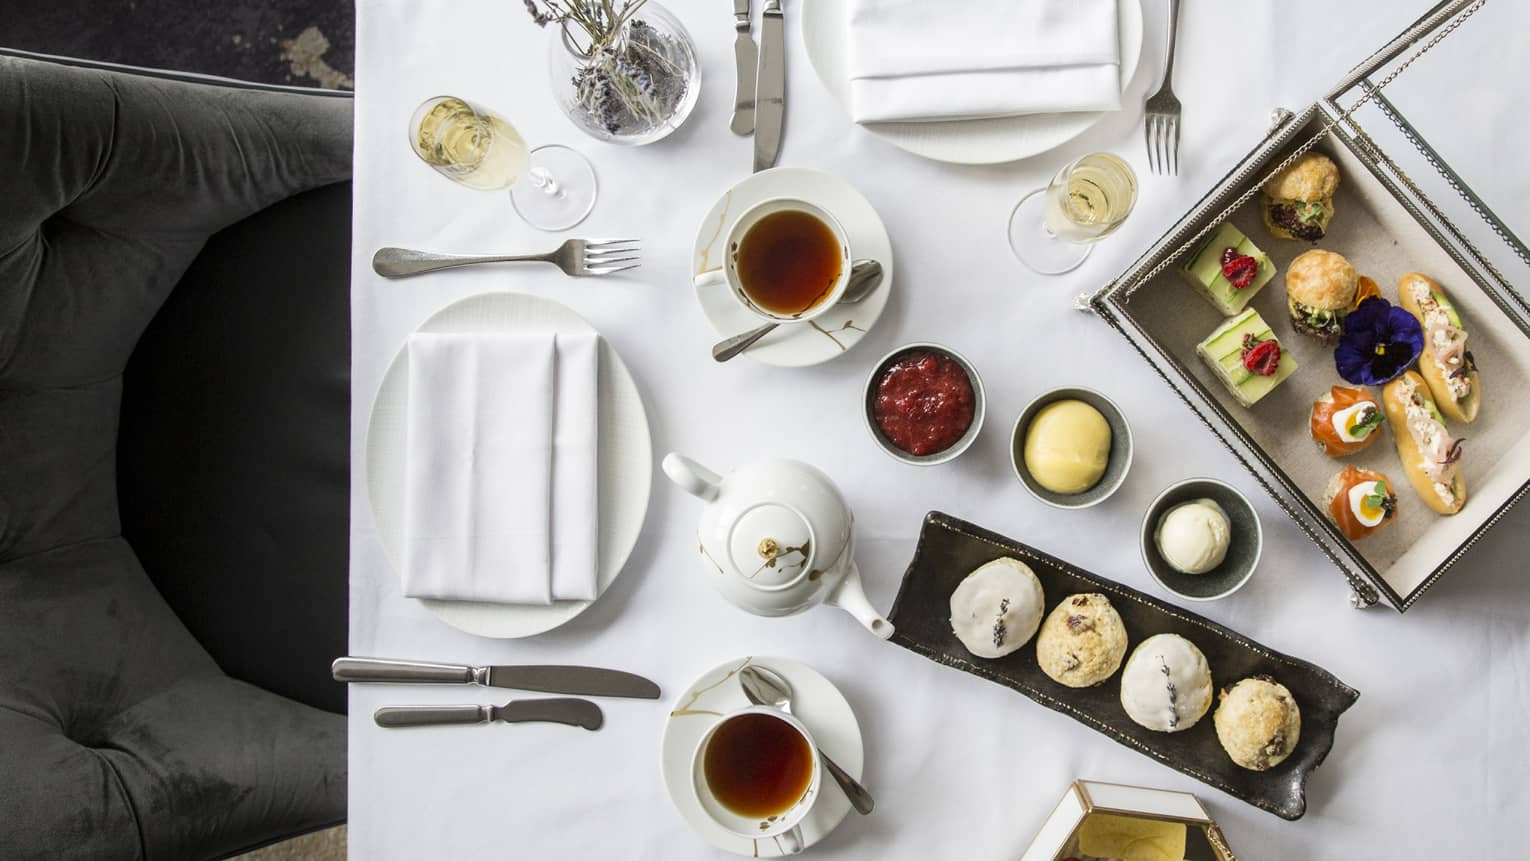 Aerial view of elegant afternoon tea display, complete with finger foods and condiments